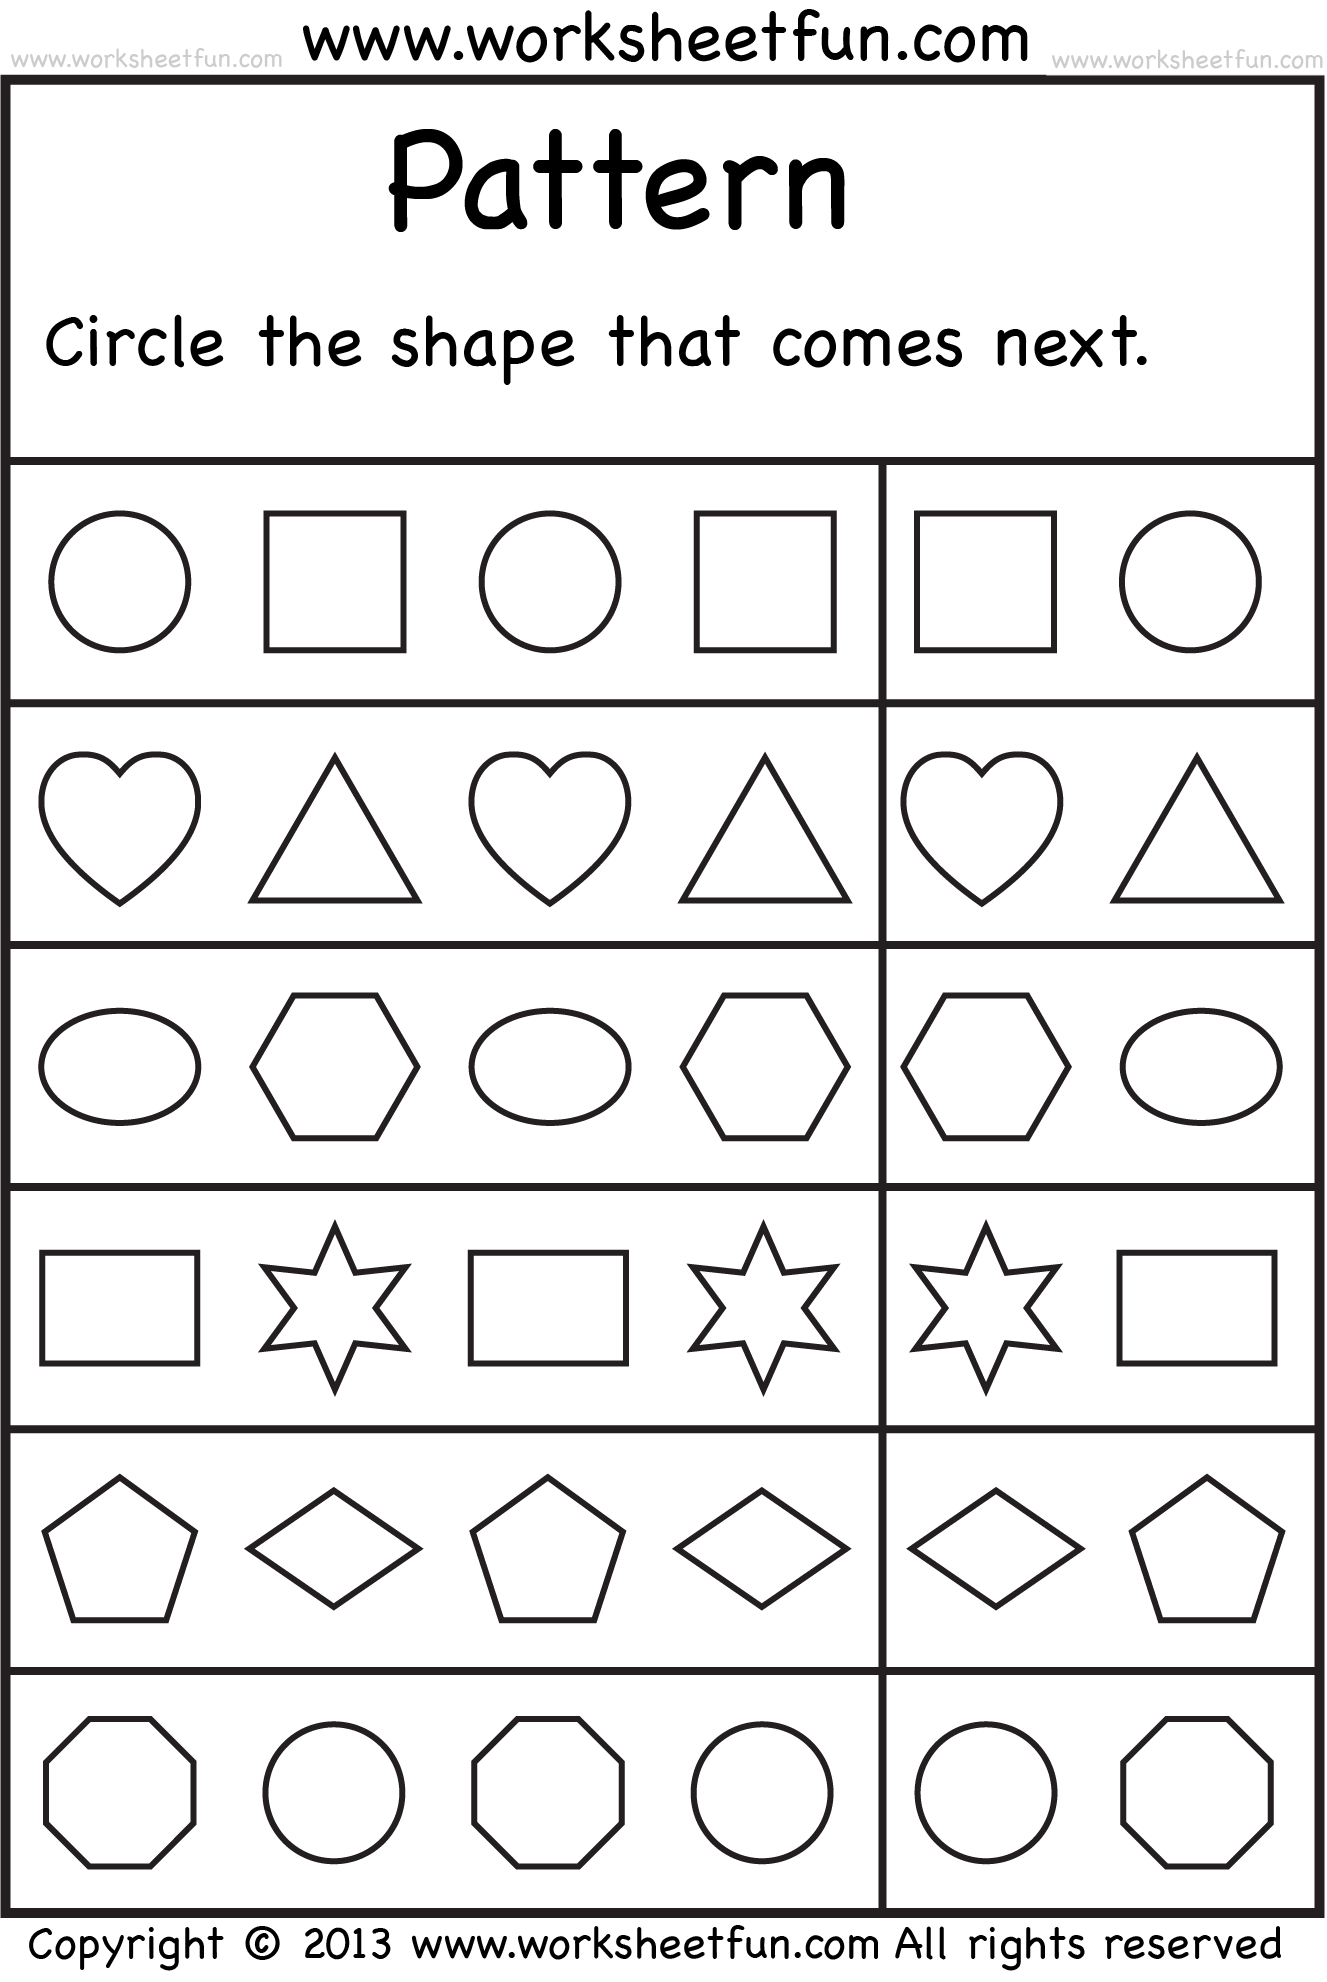 Proatmealus  Nice  Images About School Worksheets On Pinterest  Number Words  With Hot  Images About School Worksheets On Pinterest  Number Words Alphabet Worksheets And Free Printable Kindergarten Worksheets With Comely Learning Long Division Worksheets Also Free Math Worksheets On Fractions In Addition Worksheets For Kindergarten Maths And Division Worksheets Year  As Well As Worksheet  Kids Additionally Problem Solving Division Worksheets From Pinterestcom With Proatmealus  Hot  Images About School Worksheets On Pinterest  Number Words  With Comely  Images About School Worksheets On Pinterest  Number Words Alphabet Worksheets And Free Printable Kindergarten Worksheets And Nice Learning Long Division Worksheets Also Free Math Worksheets On Fractions In Addition Worksheets For Kindergarten Maths From Pinterestcom